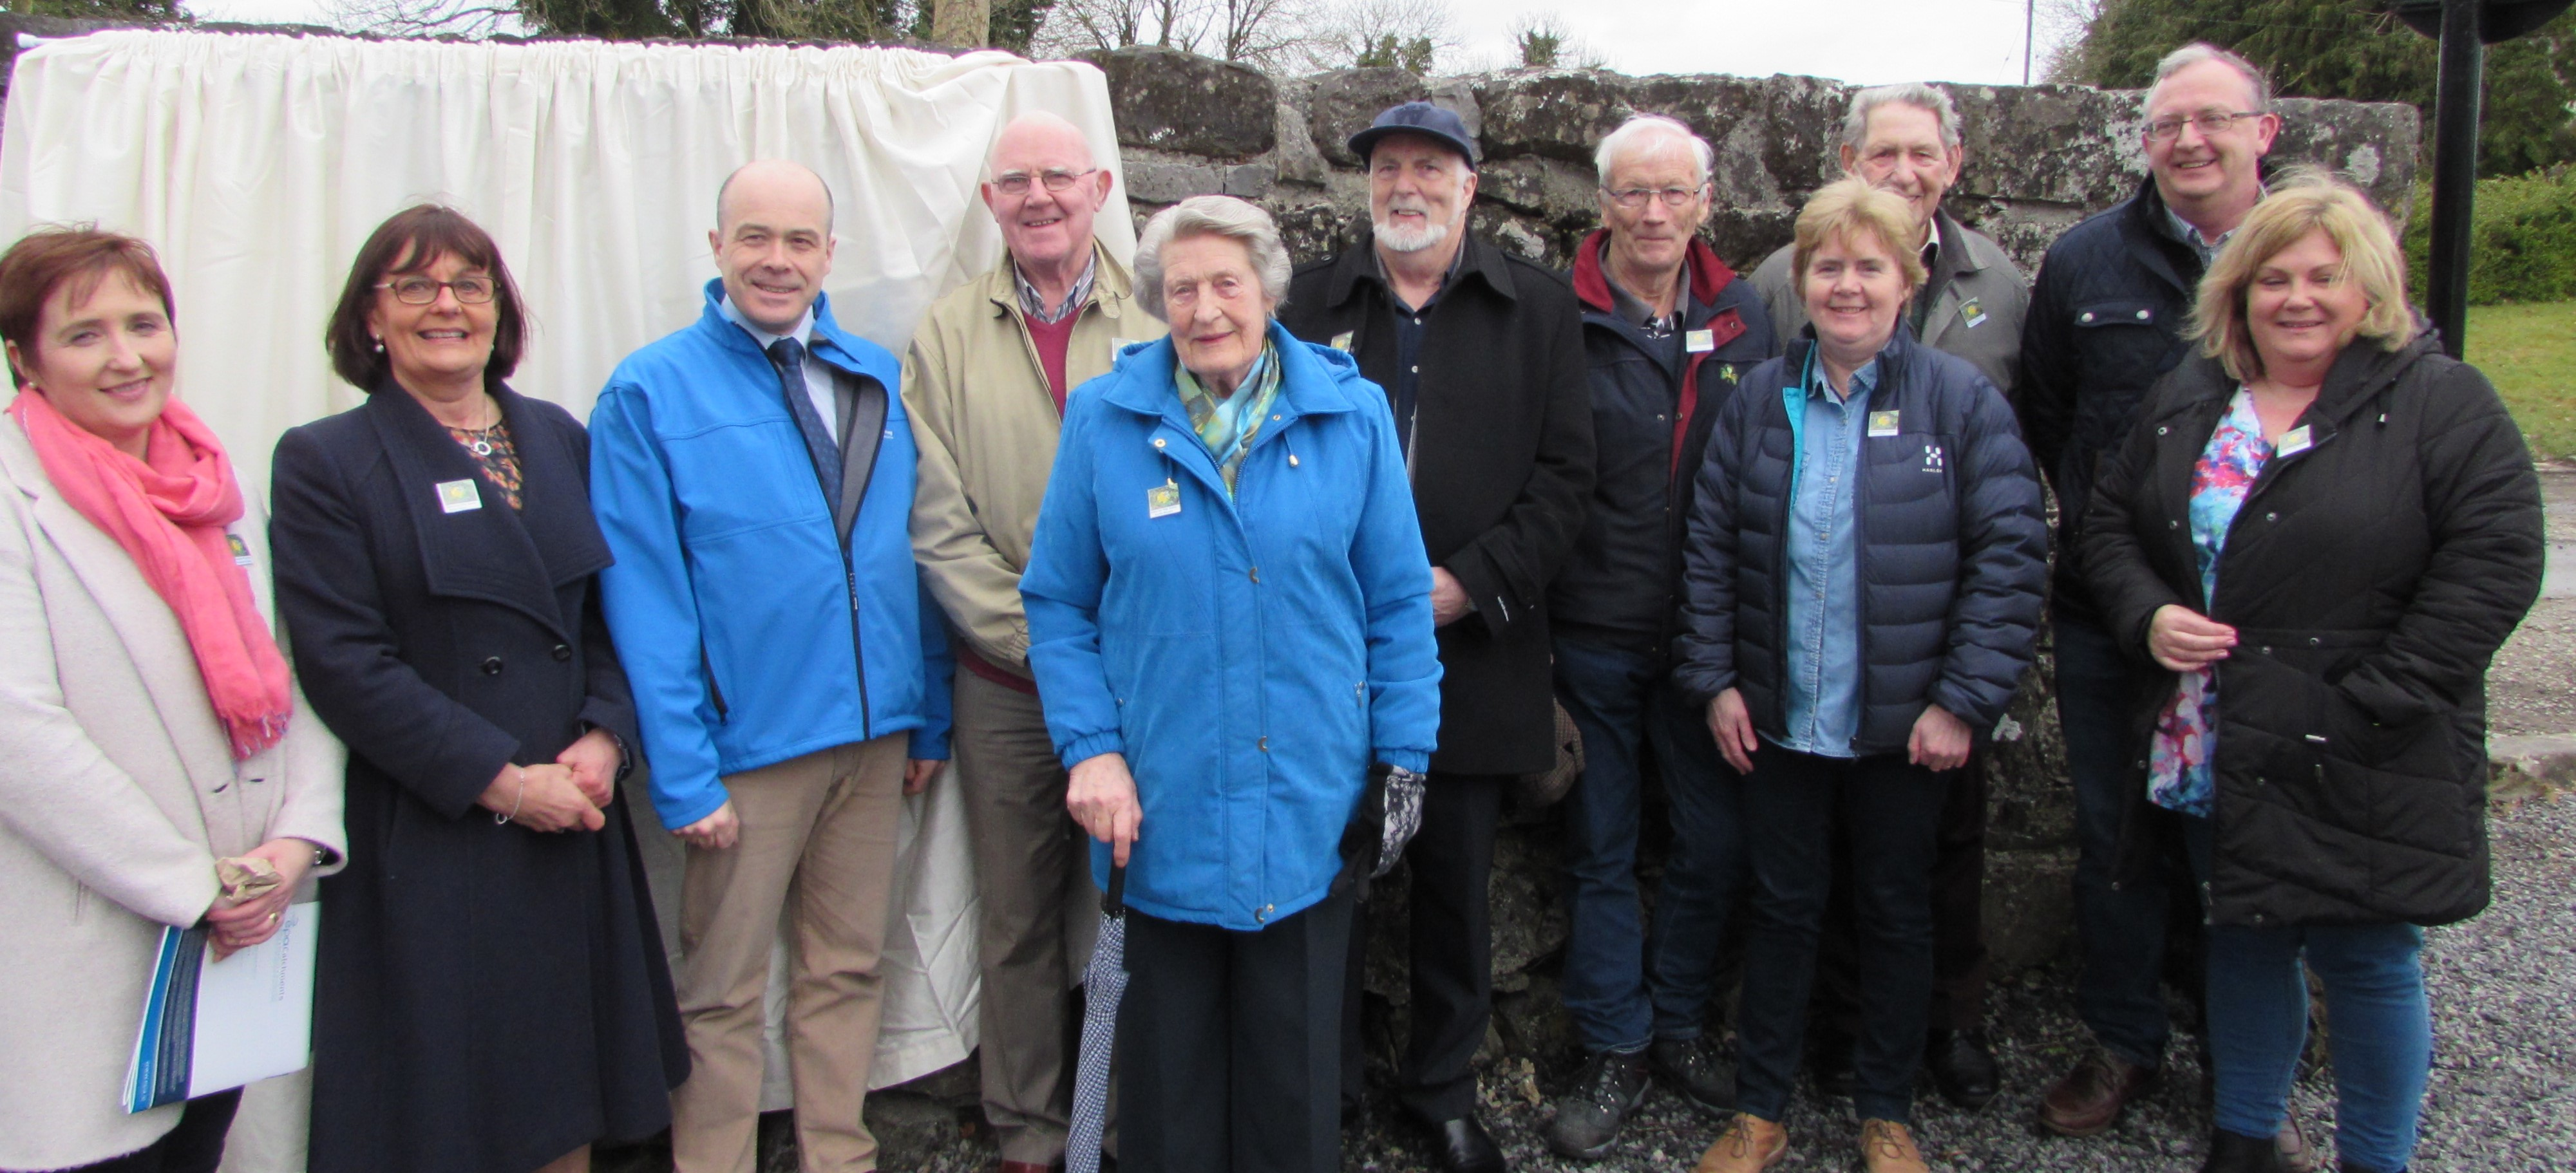 Kilteevan Tidy Towns Committee with Minister Naughton: Marguerite Croghan, Eileen Fahey, Denis Naughton, Minister for Communications Climate Acton and Environment, Joe Fox, Gertie Murphy Ray Clabby, Barney Donlon, Lena Coyle, Mattie Murphy, Hugh Brennan, Fiona Coen.